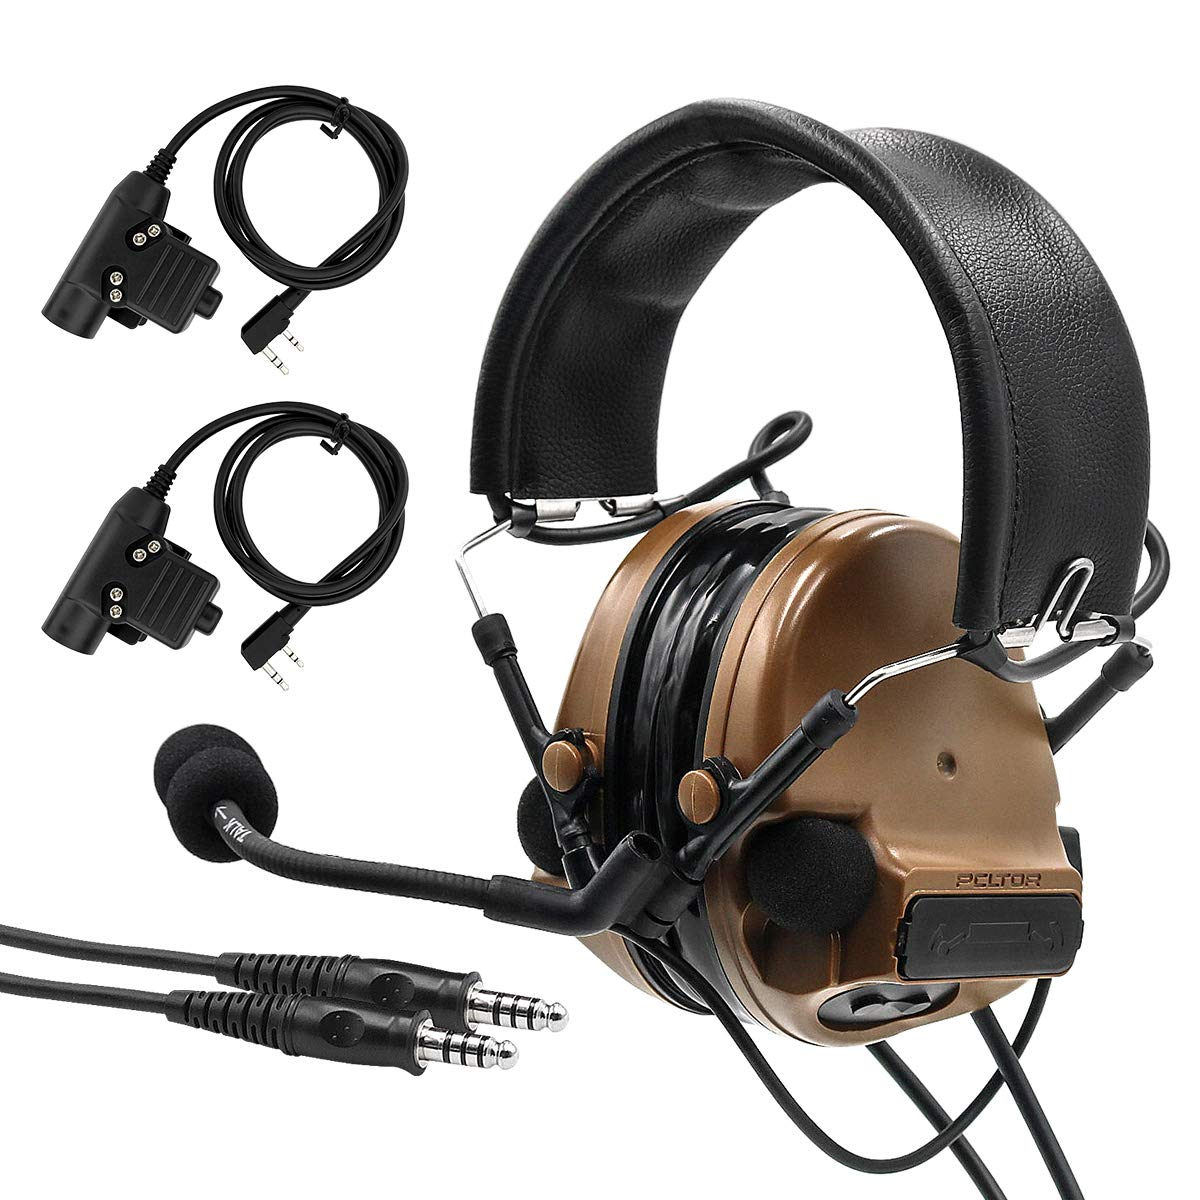 TAC-SKY COMTAC III Double Plugs Tactical Headset,Ear Protection,Sound Amplification for Airsoft Sport (Coyote Brown) by TAC-SKY